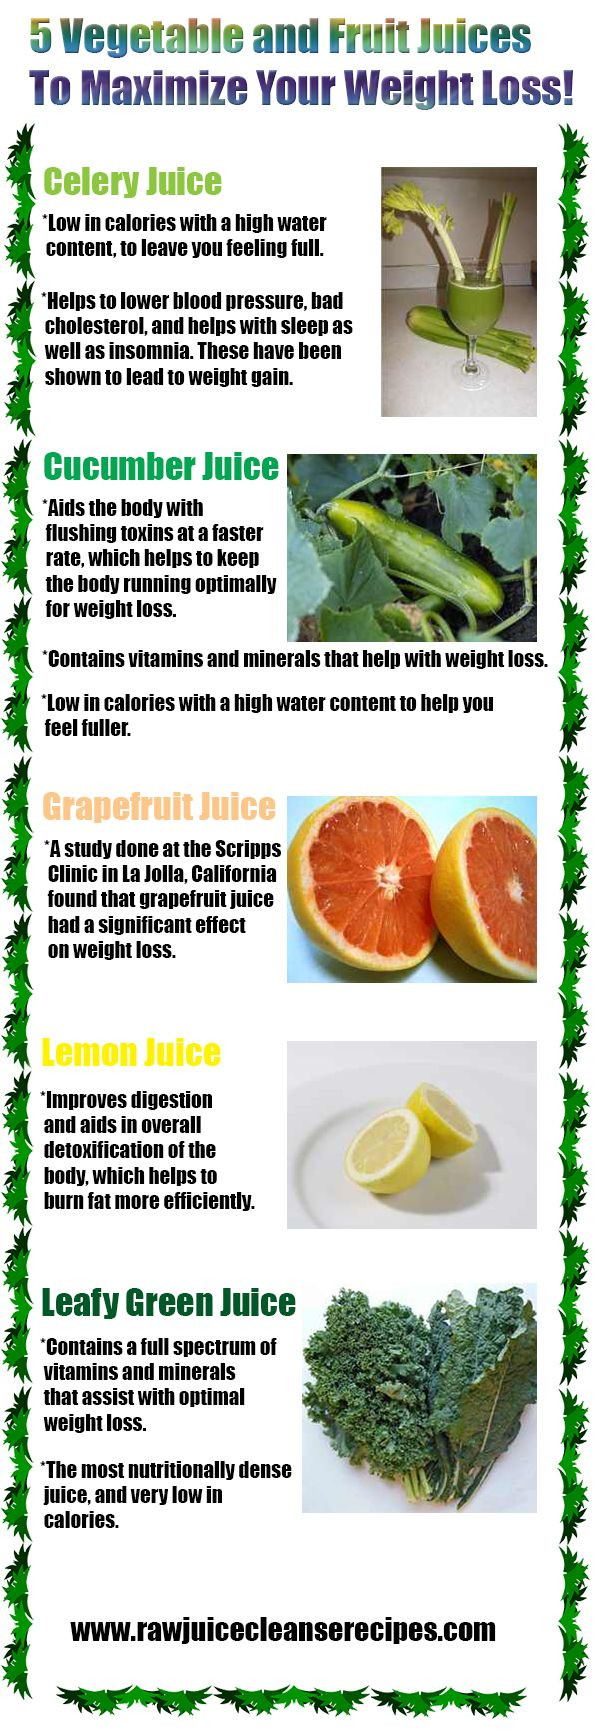 The 25 Best Ideas for Vegetable Juice Recipes for Weight ...